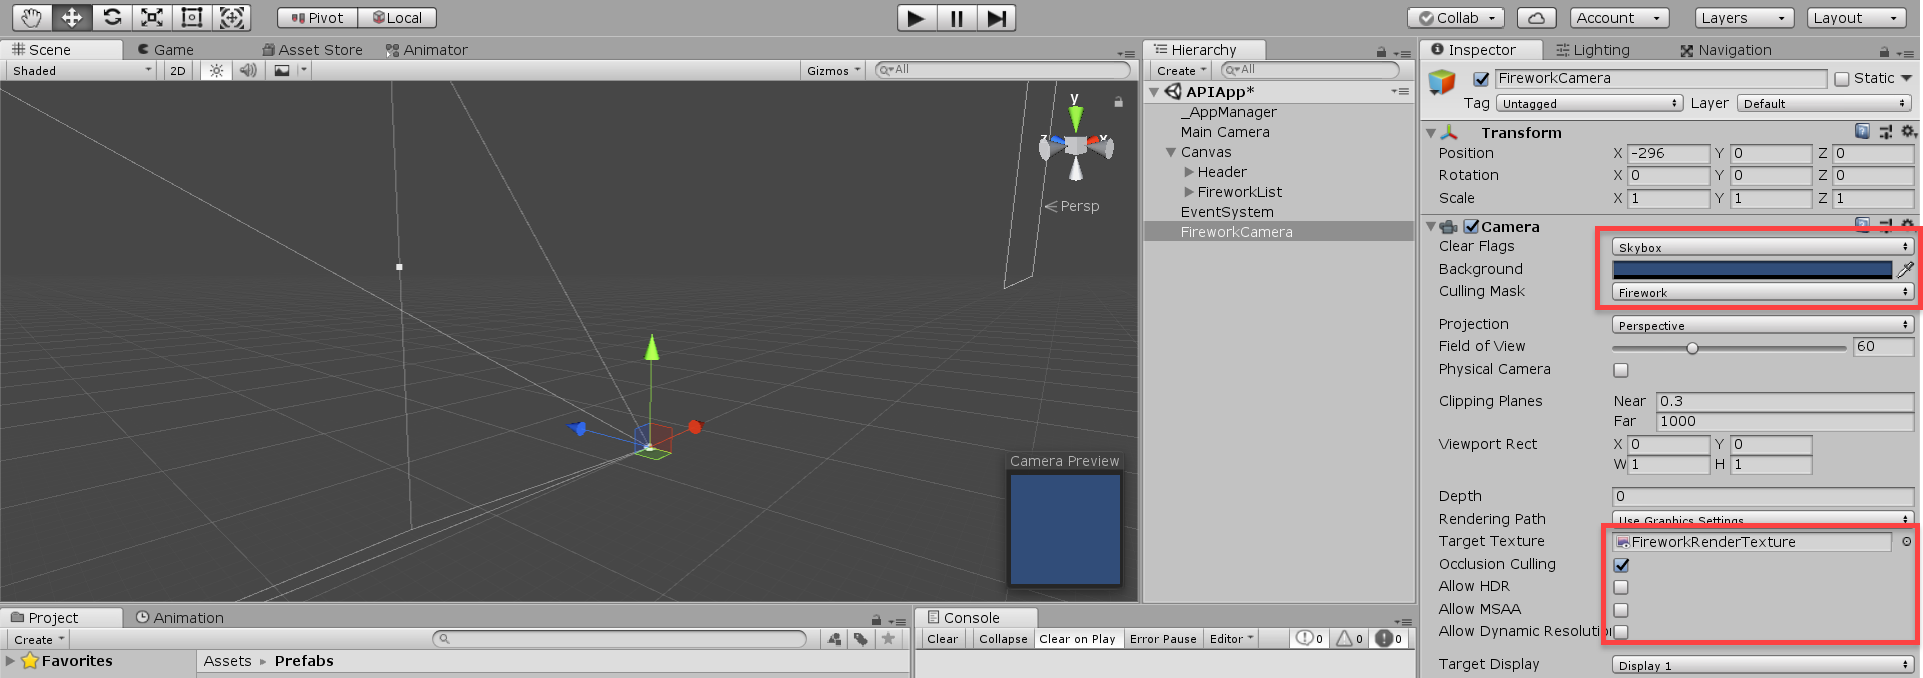 Unity Camera options with setting adjusted